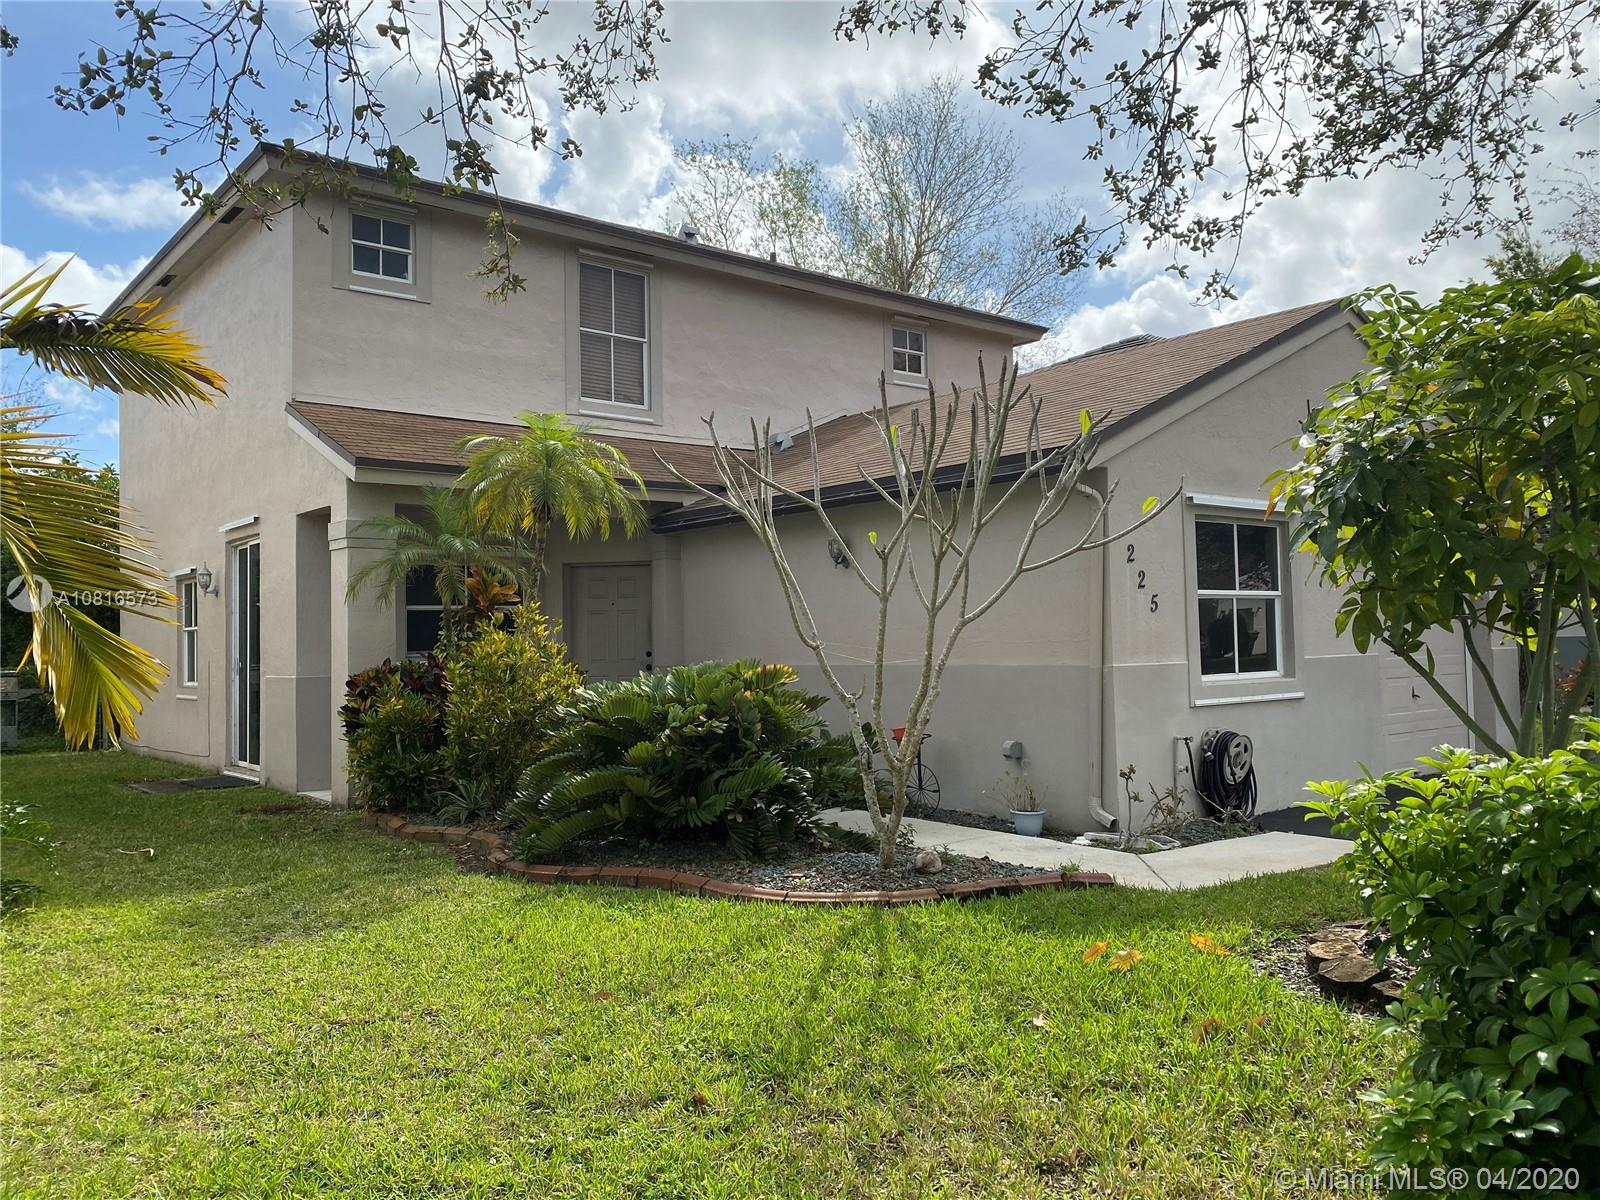 "Back on the market! Price reduction! Chapel Trails! Pembroke Pines! Beautiful, large, comfortable single family home with garage. It consists of four bedrooms, one on the first floor and three on second floor. With three full bathrooms. All brand new stainless steel appliances adorn this home's bright kitchen. Huge master bedroom with walk in closet.  Home has security system and all wired for surround sound. Displays a beautiful Yard with butterfly trees and many colorful butterflies.  Kids parks and community pool close by. Low association fee that covers cable, maintenance of your front lawn with sprinkler system etc. Excellent family oriented community with all, ""A"" schools close by. Bring your buyers to this affordable lovely home. Easy to show, easy to love! HOUSE IS VACANT!"